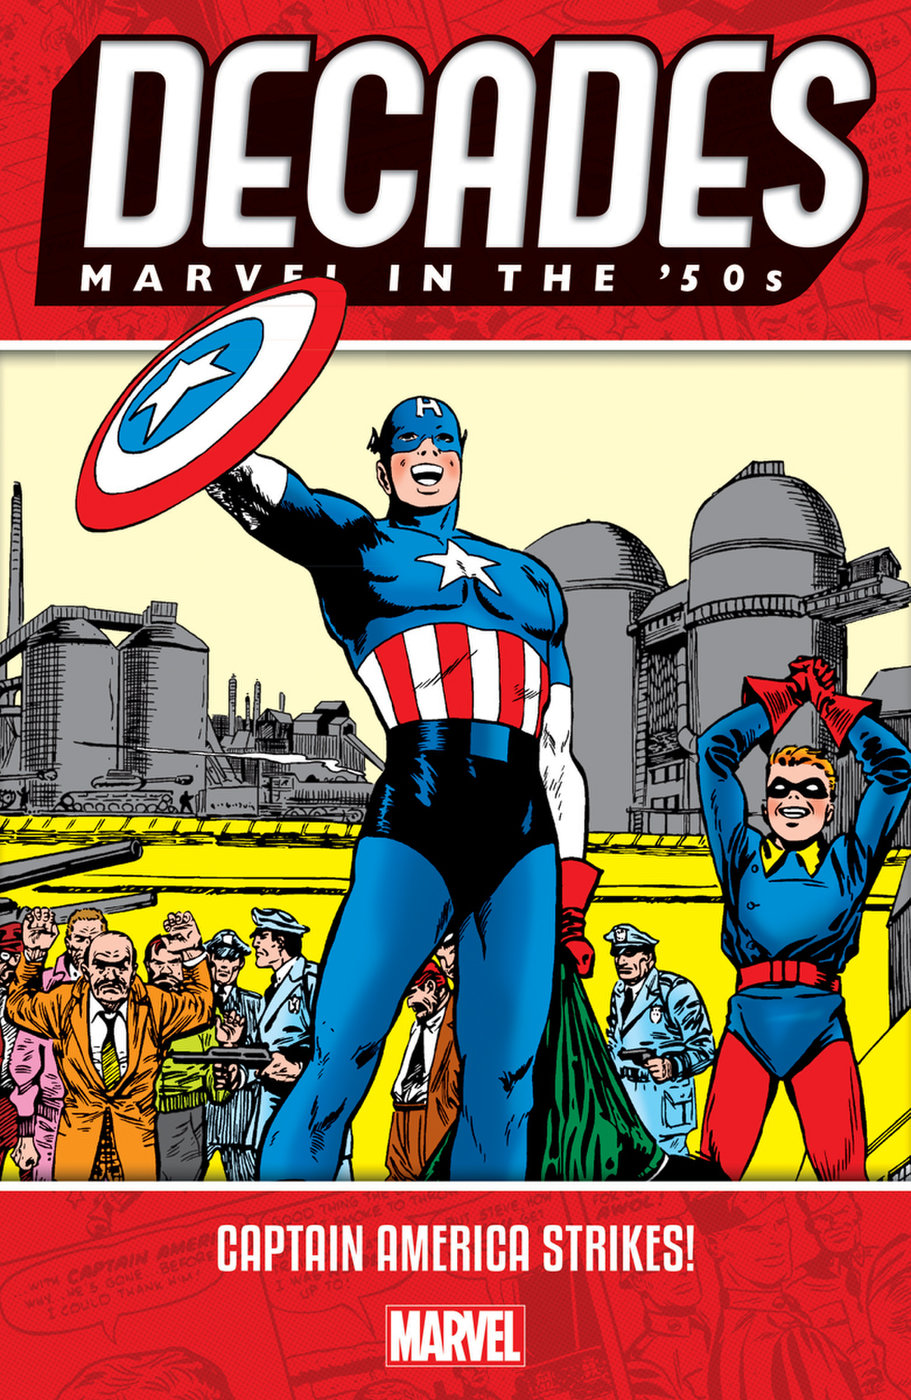 Marvel Comics Plans For Its 80th Anniversary! | Inside Pulse